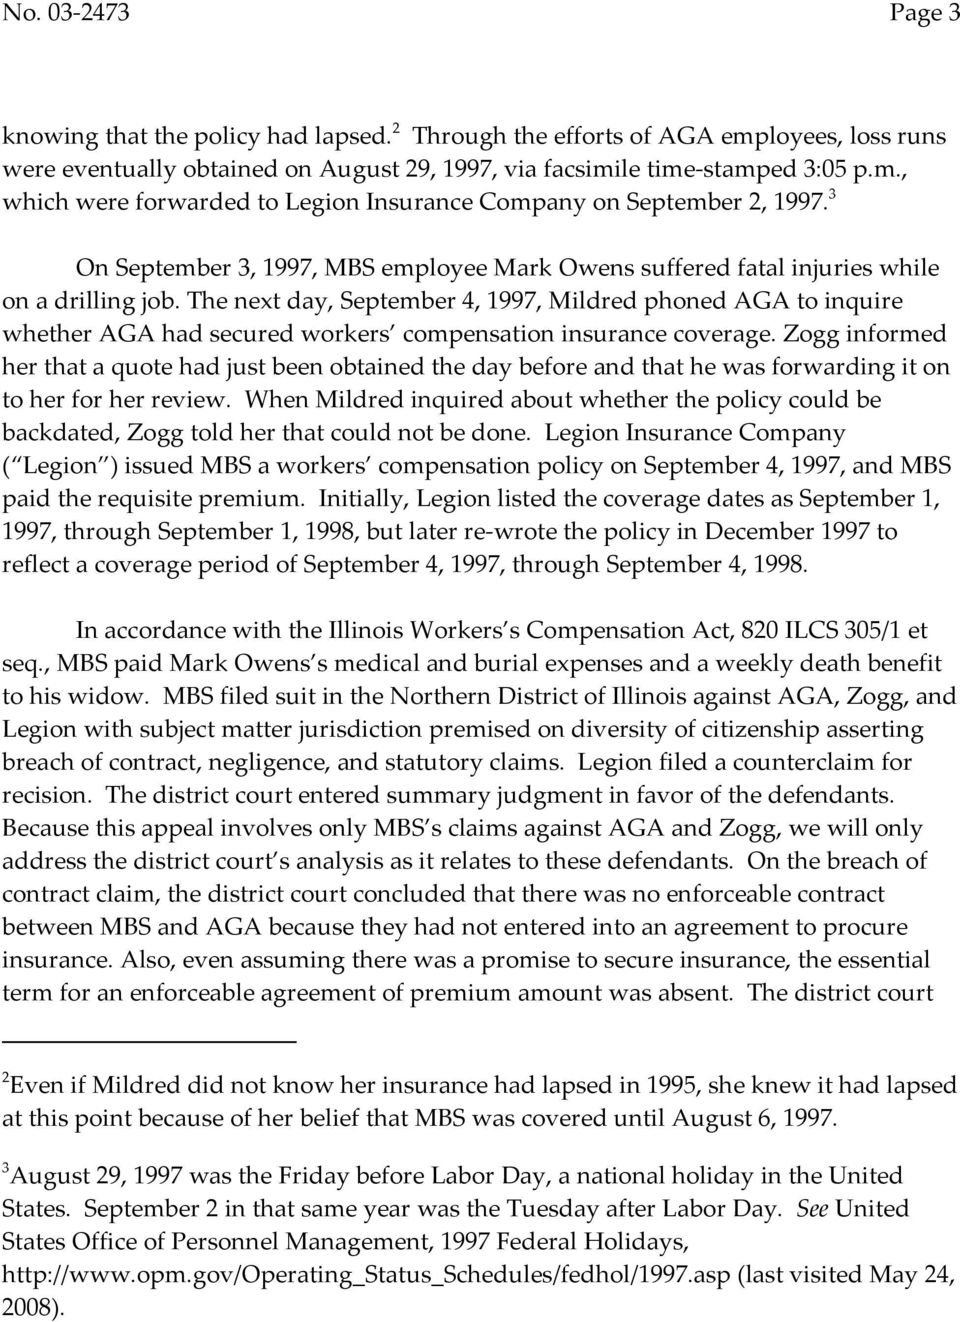 The next day, September 4, 1997, Mildred phoned AGA to inquire whether AGA had secured workers compensation insurance coverage.